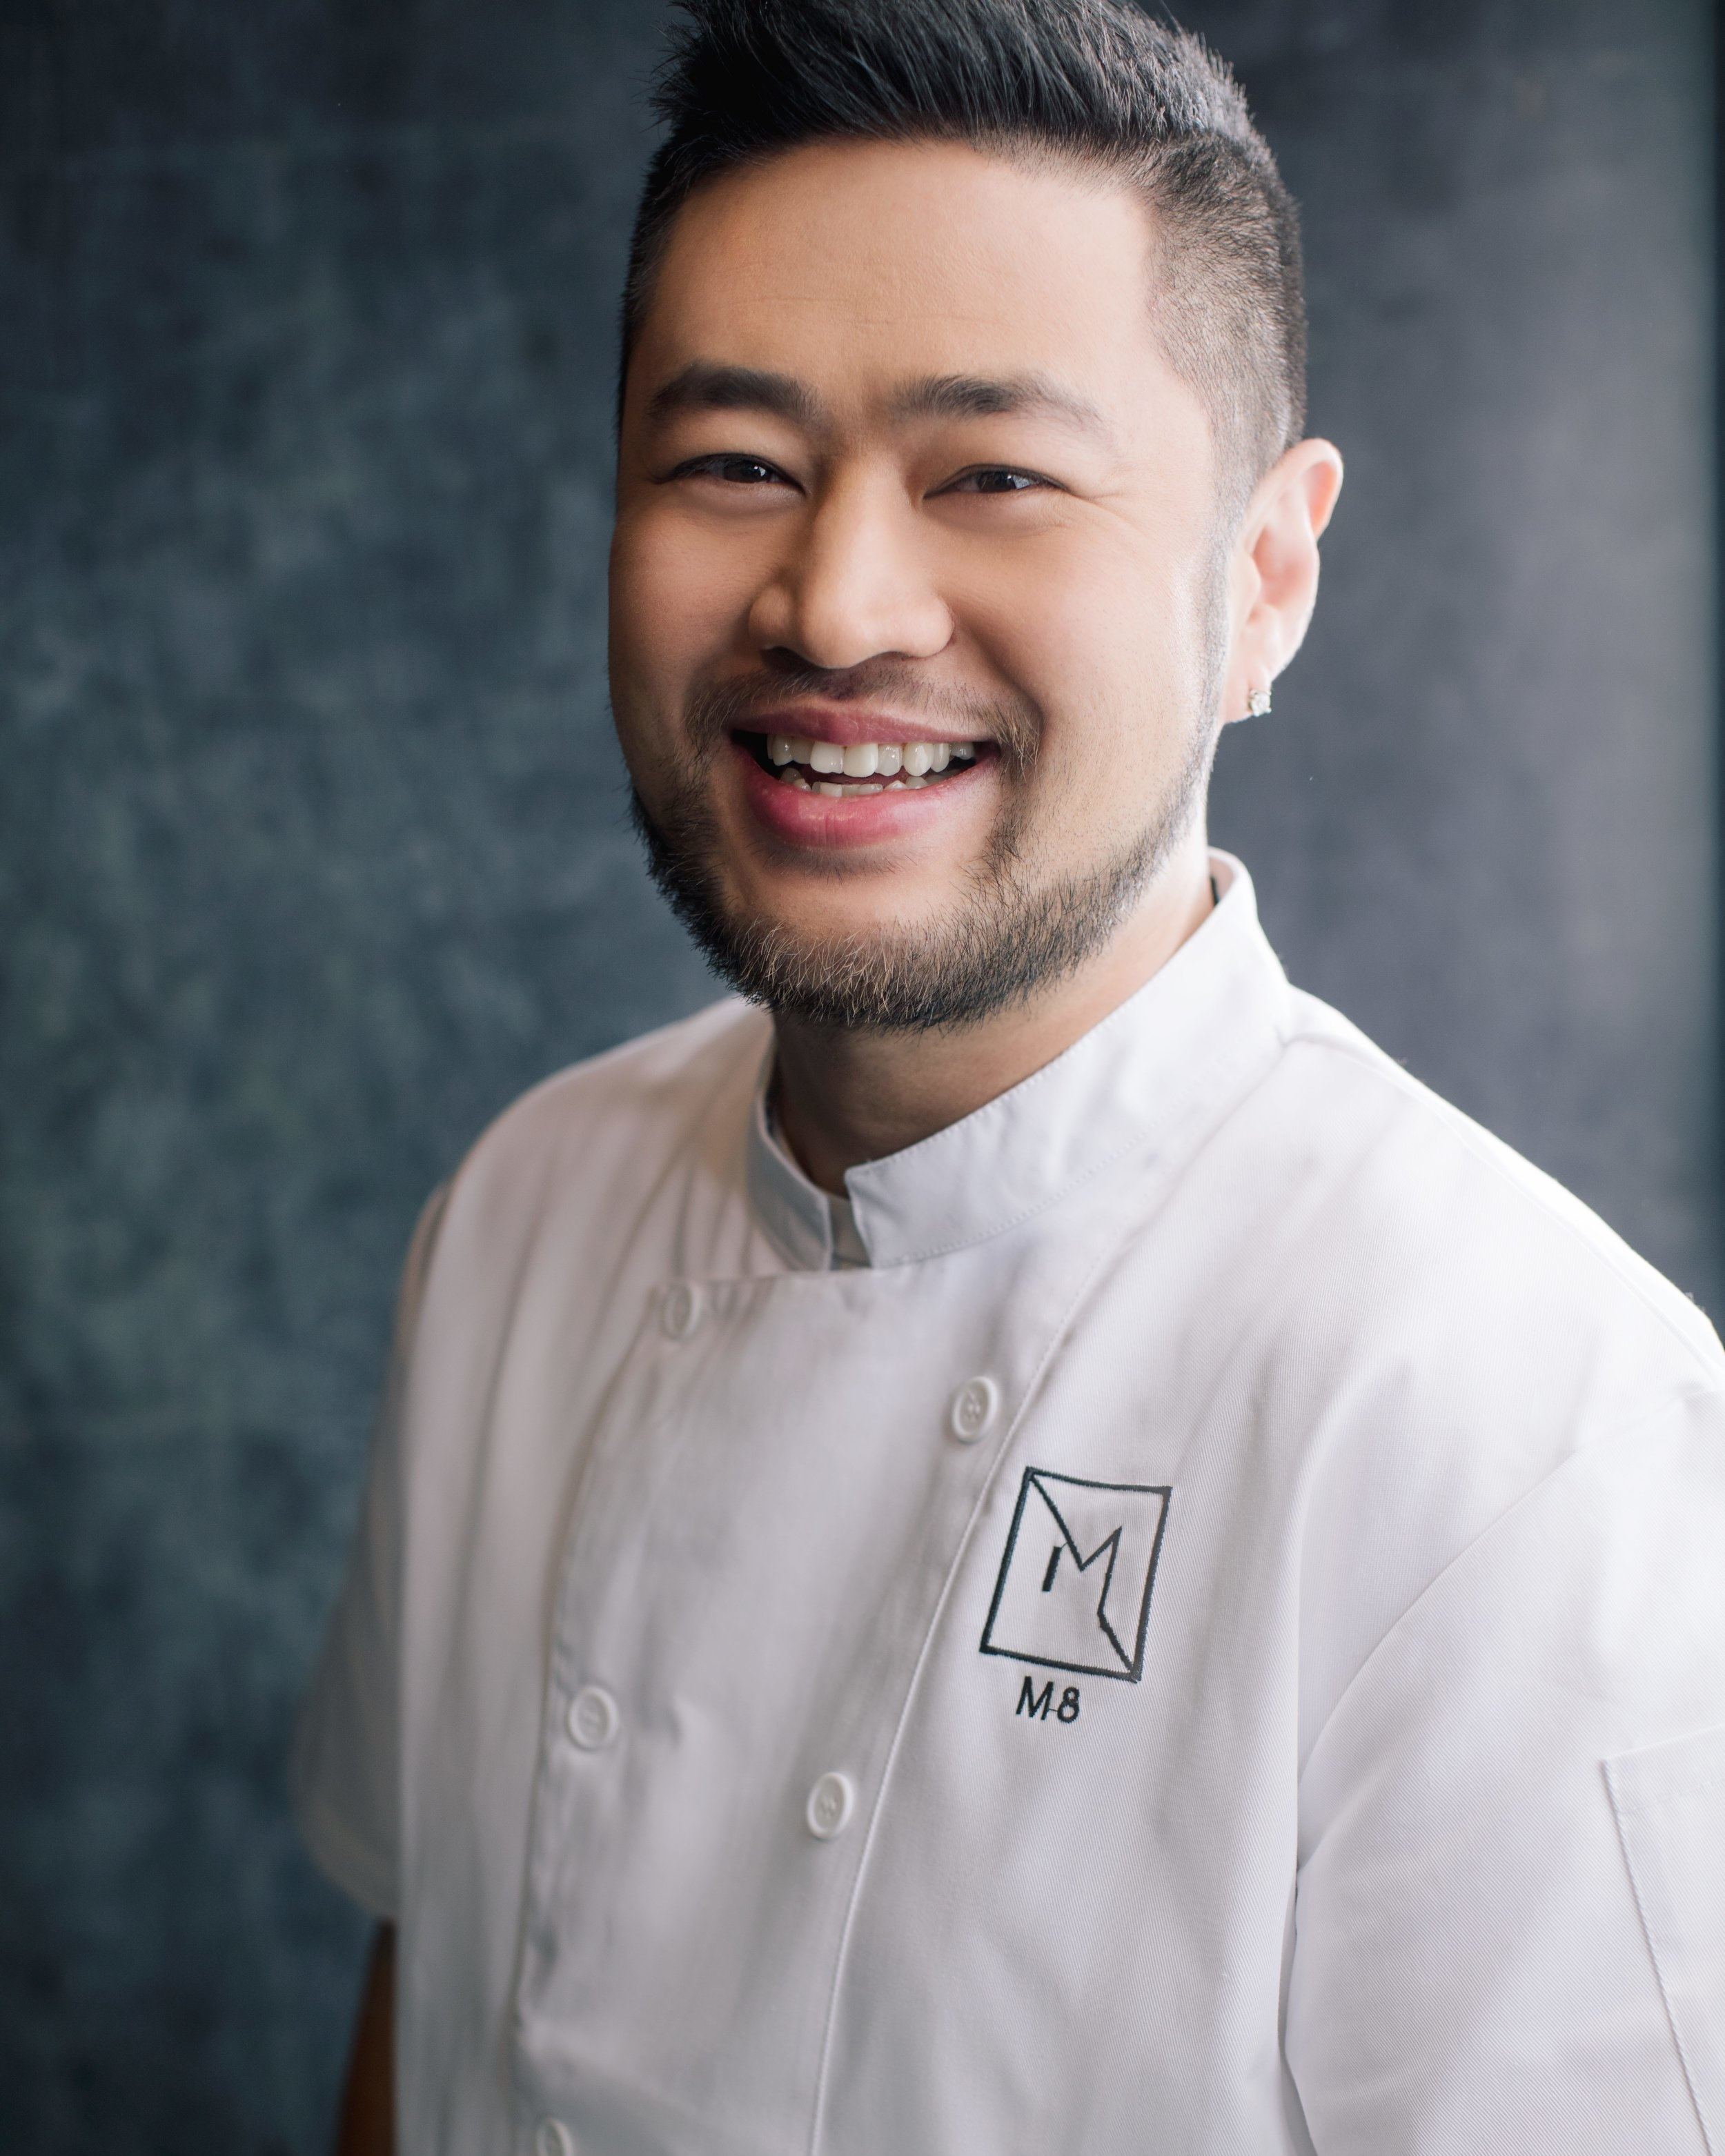 XIN MAO - EXECUTIVE CHEF, CO-OWNERBorn and raised in the historic city of Luoyang in China's Henan province, Chef Xin Mao came to Canada at age 18 to study international trade. He also brought with him a natural affinity for the regional cooking he learned at his grandfather's knee. It was this second passion that eventually won out, with Mao dropping business studies in favour of the culinary program at Vancouver's Art Institute.Xin worked his way up the line at storied Italian restaurants such as Cin Cin and Cioppino's, before co-launching the critically acclaimed MoMa Bistro in Richmond in 2014.